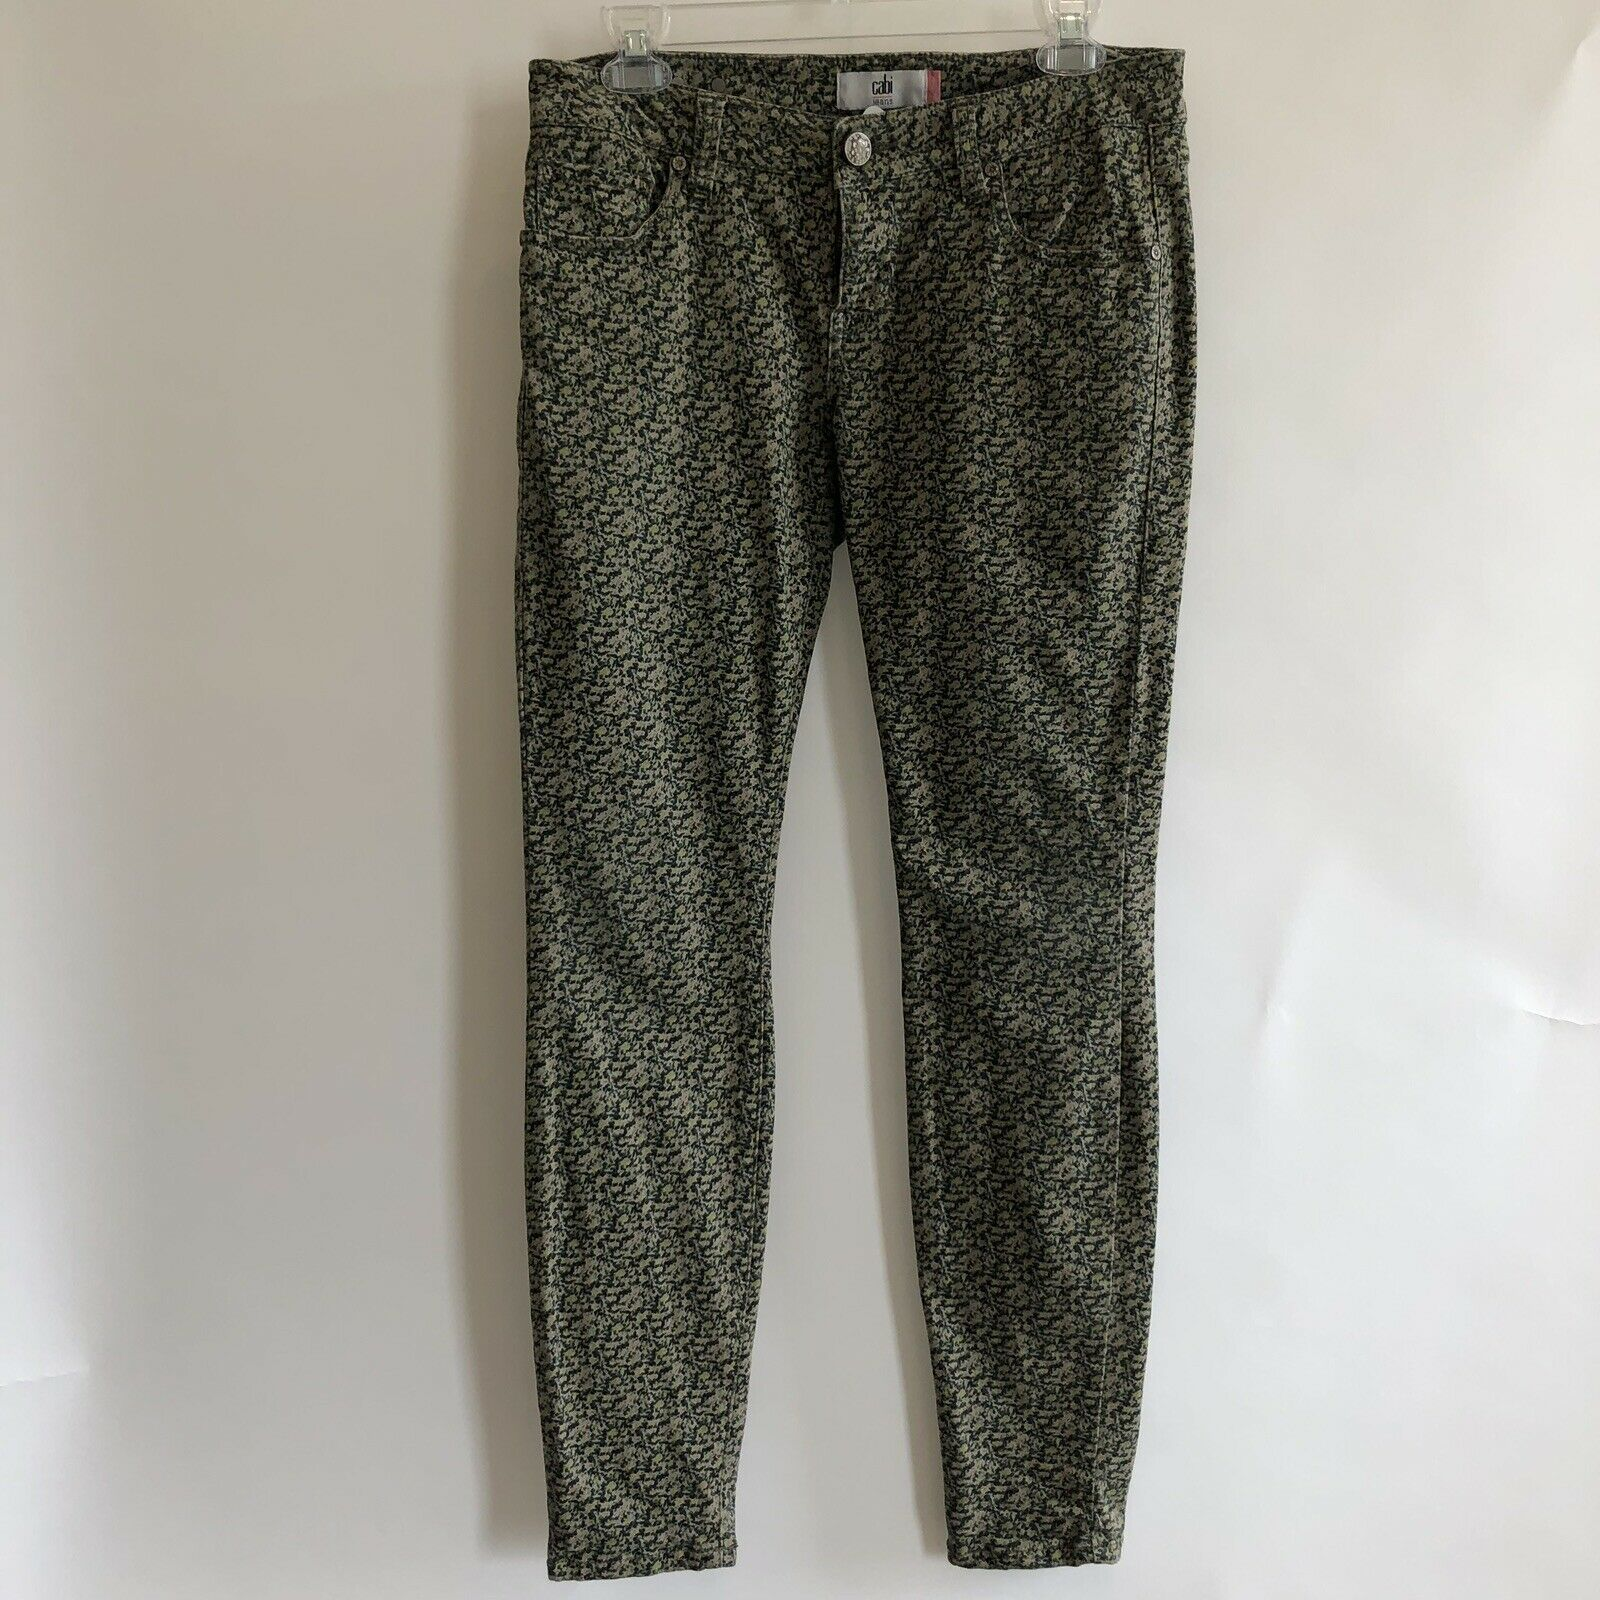 CAbi Ditzy Floral Jeans Size 4 New  109